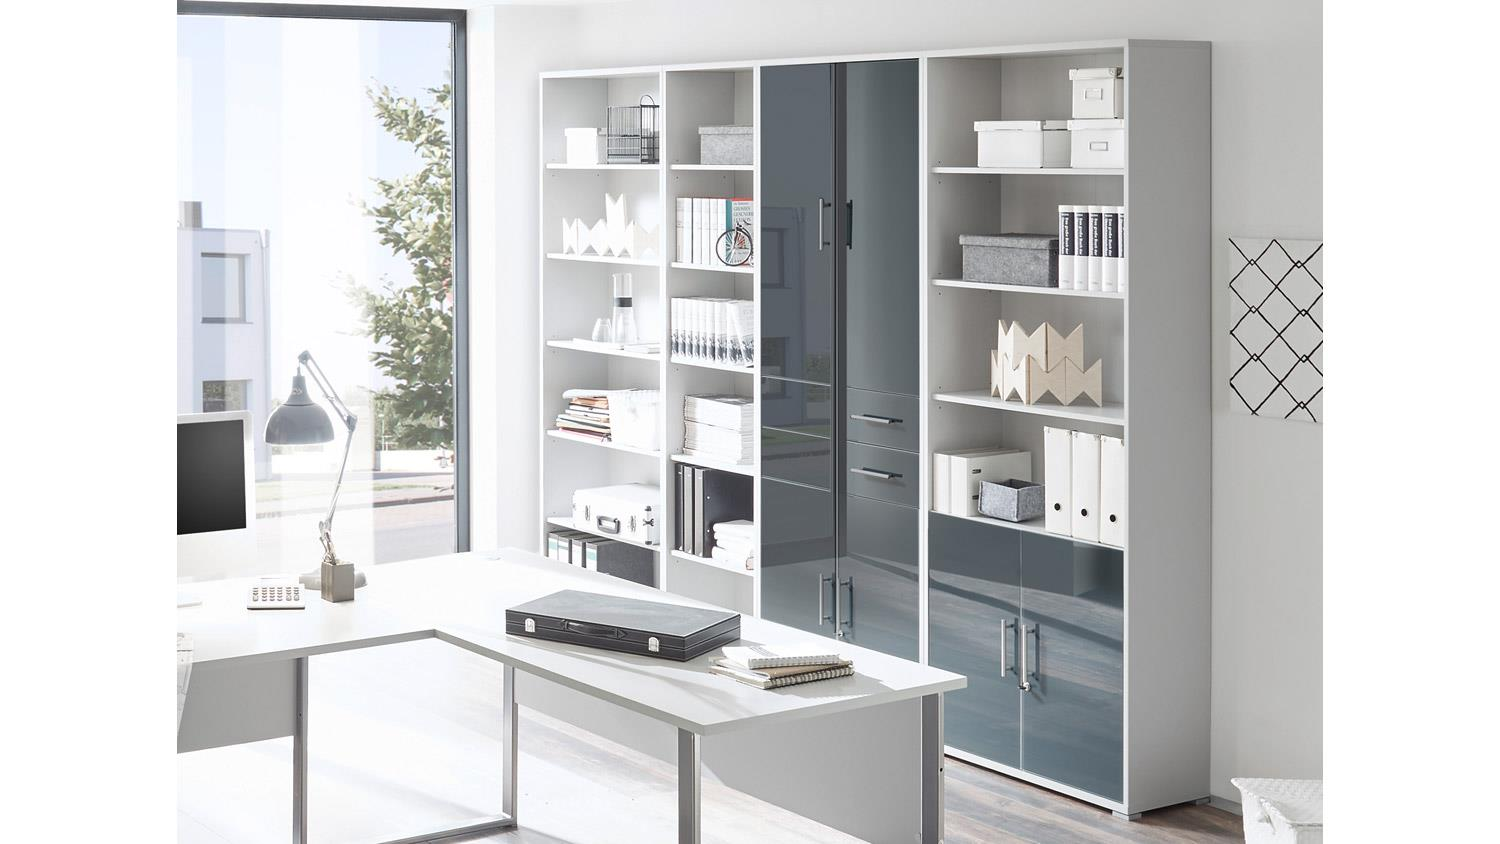 schrank office lux 4 trg lichtgrau wei glas graphit lack mit schloss. Black Bedroom Furniture Sets. Home Design Ideas